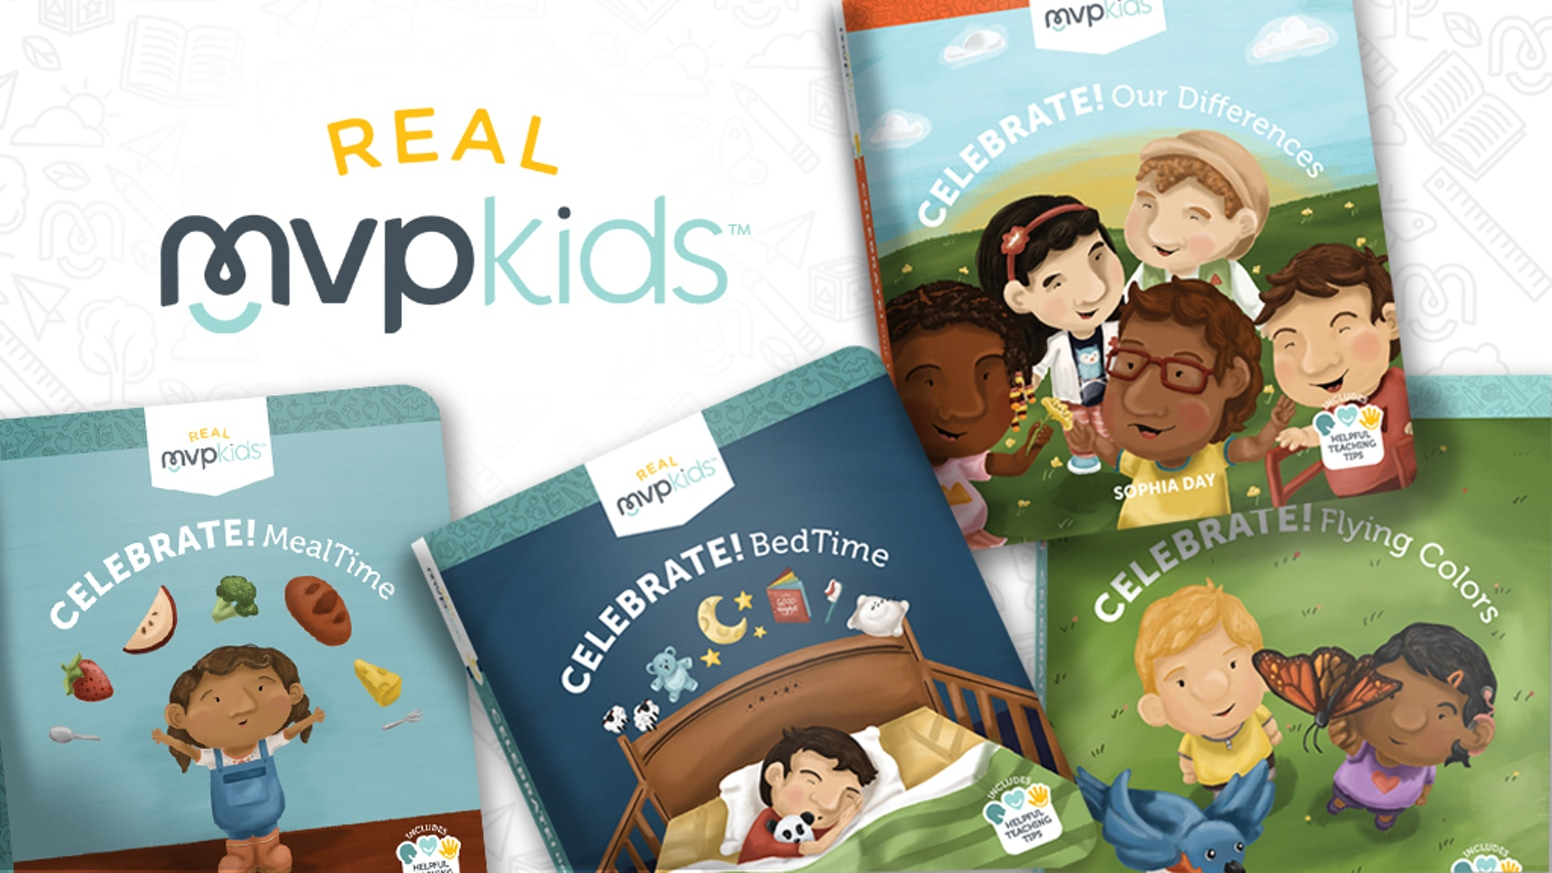 Real MVP Kids' innovative book series makes it easier for children to grow up well regardless of background, ethnicity or special needs